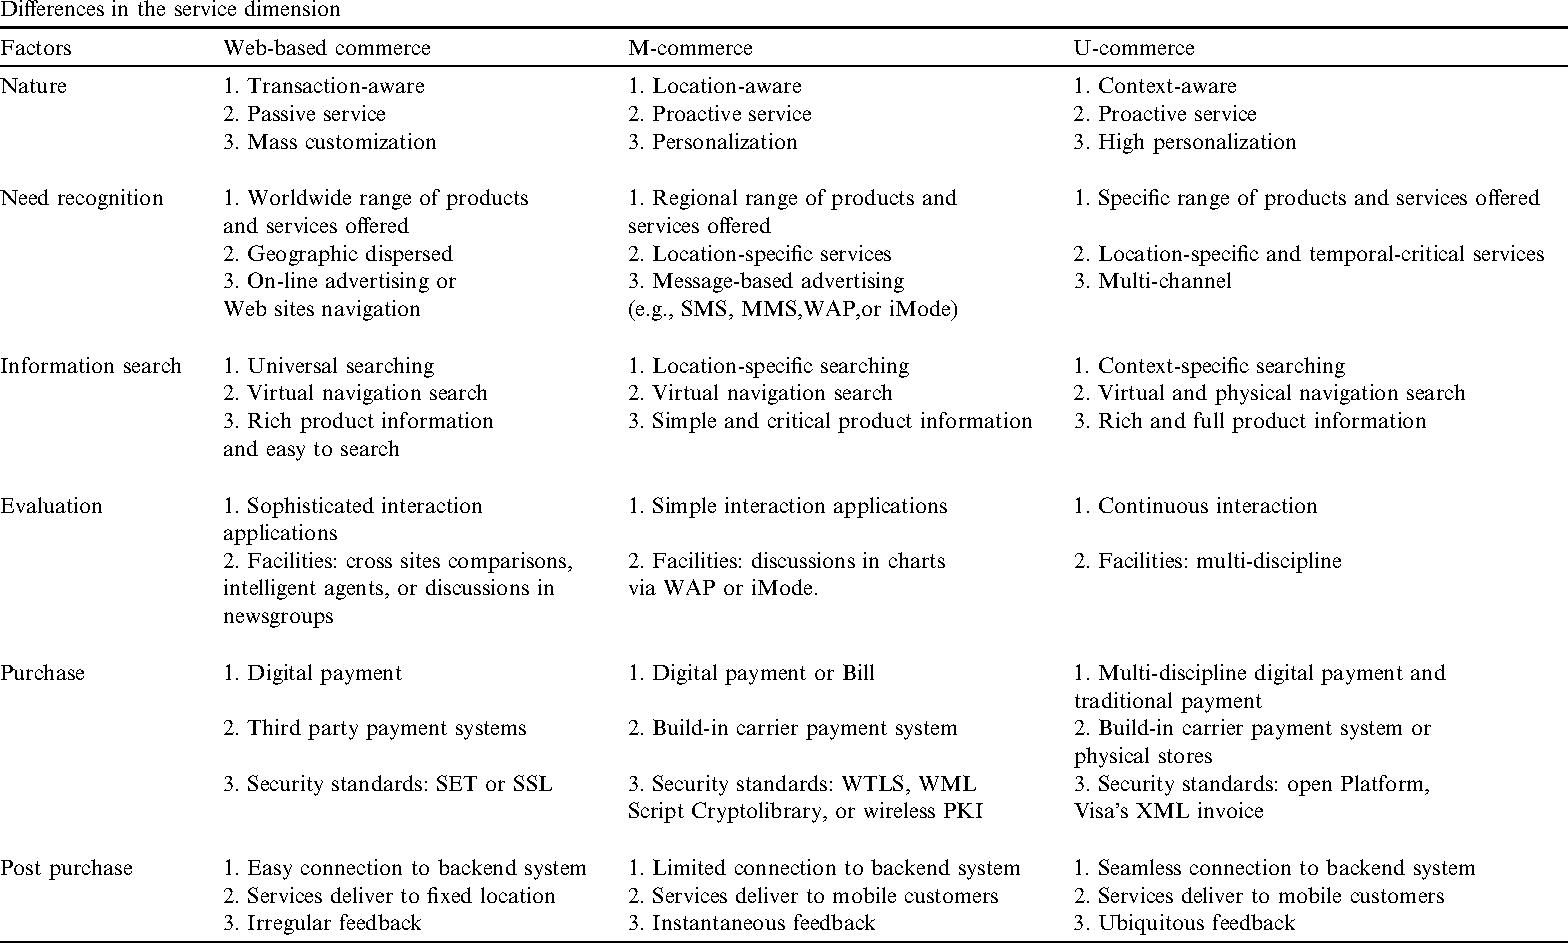 Table 3 from Analysis of E-commerce innovation and impact: a